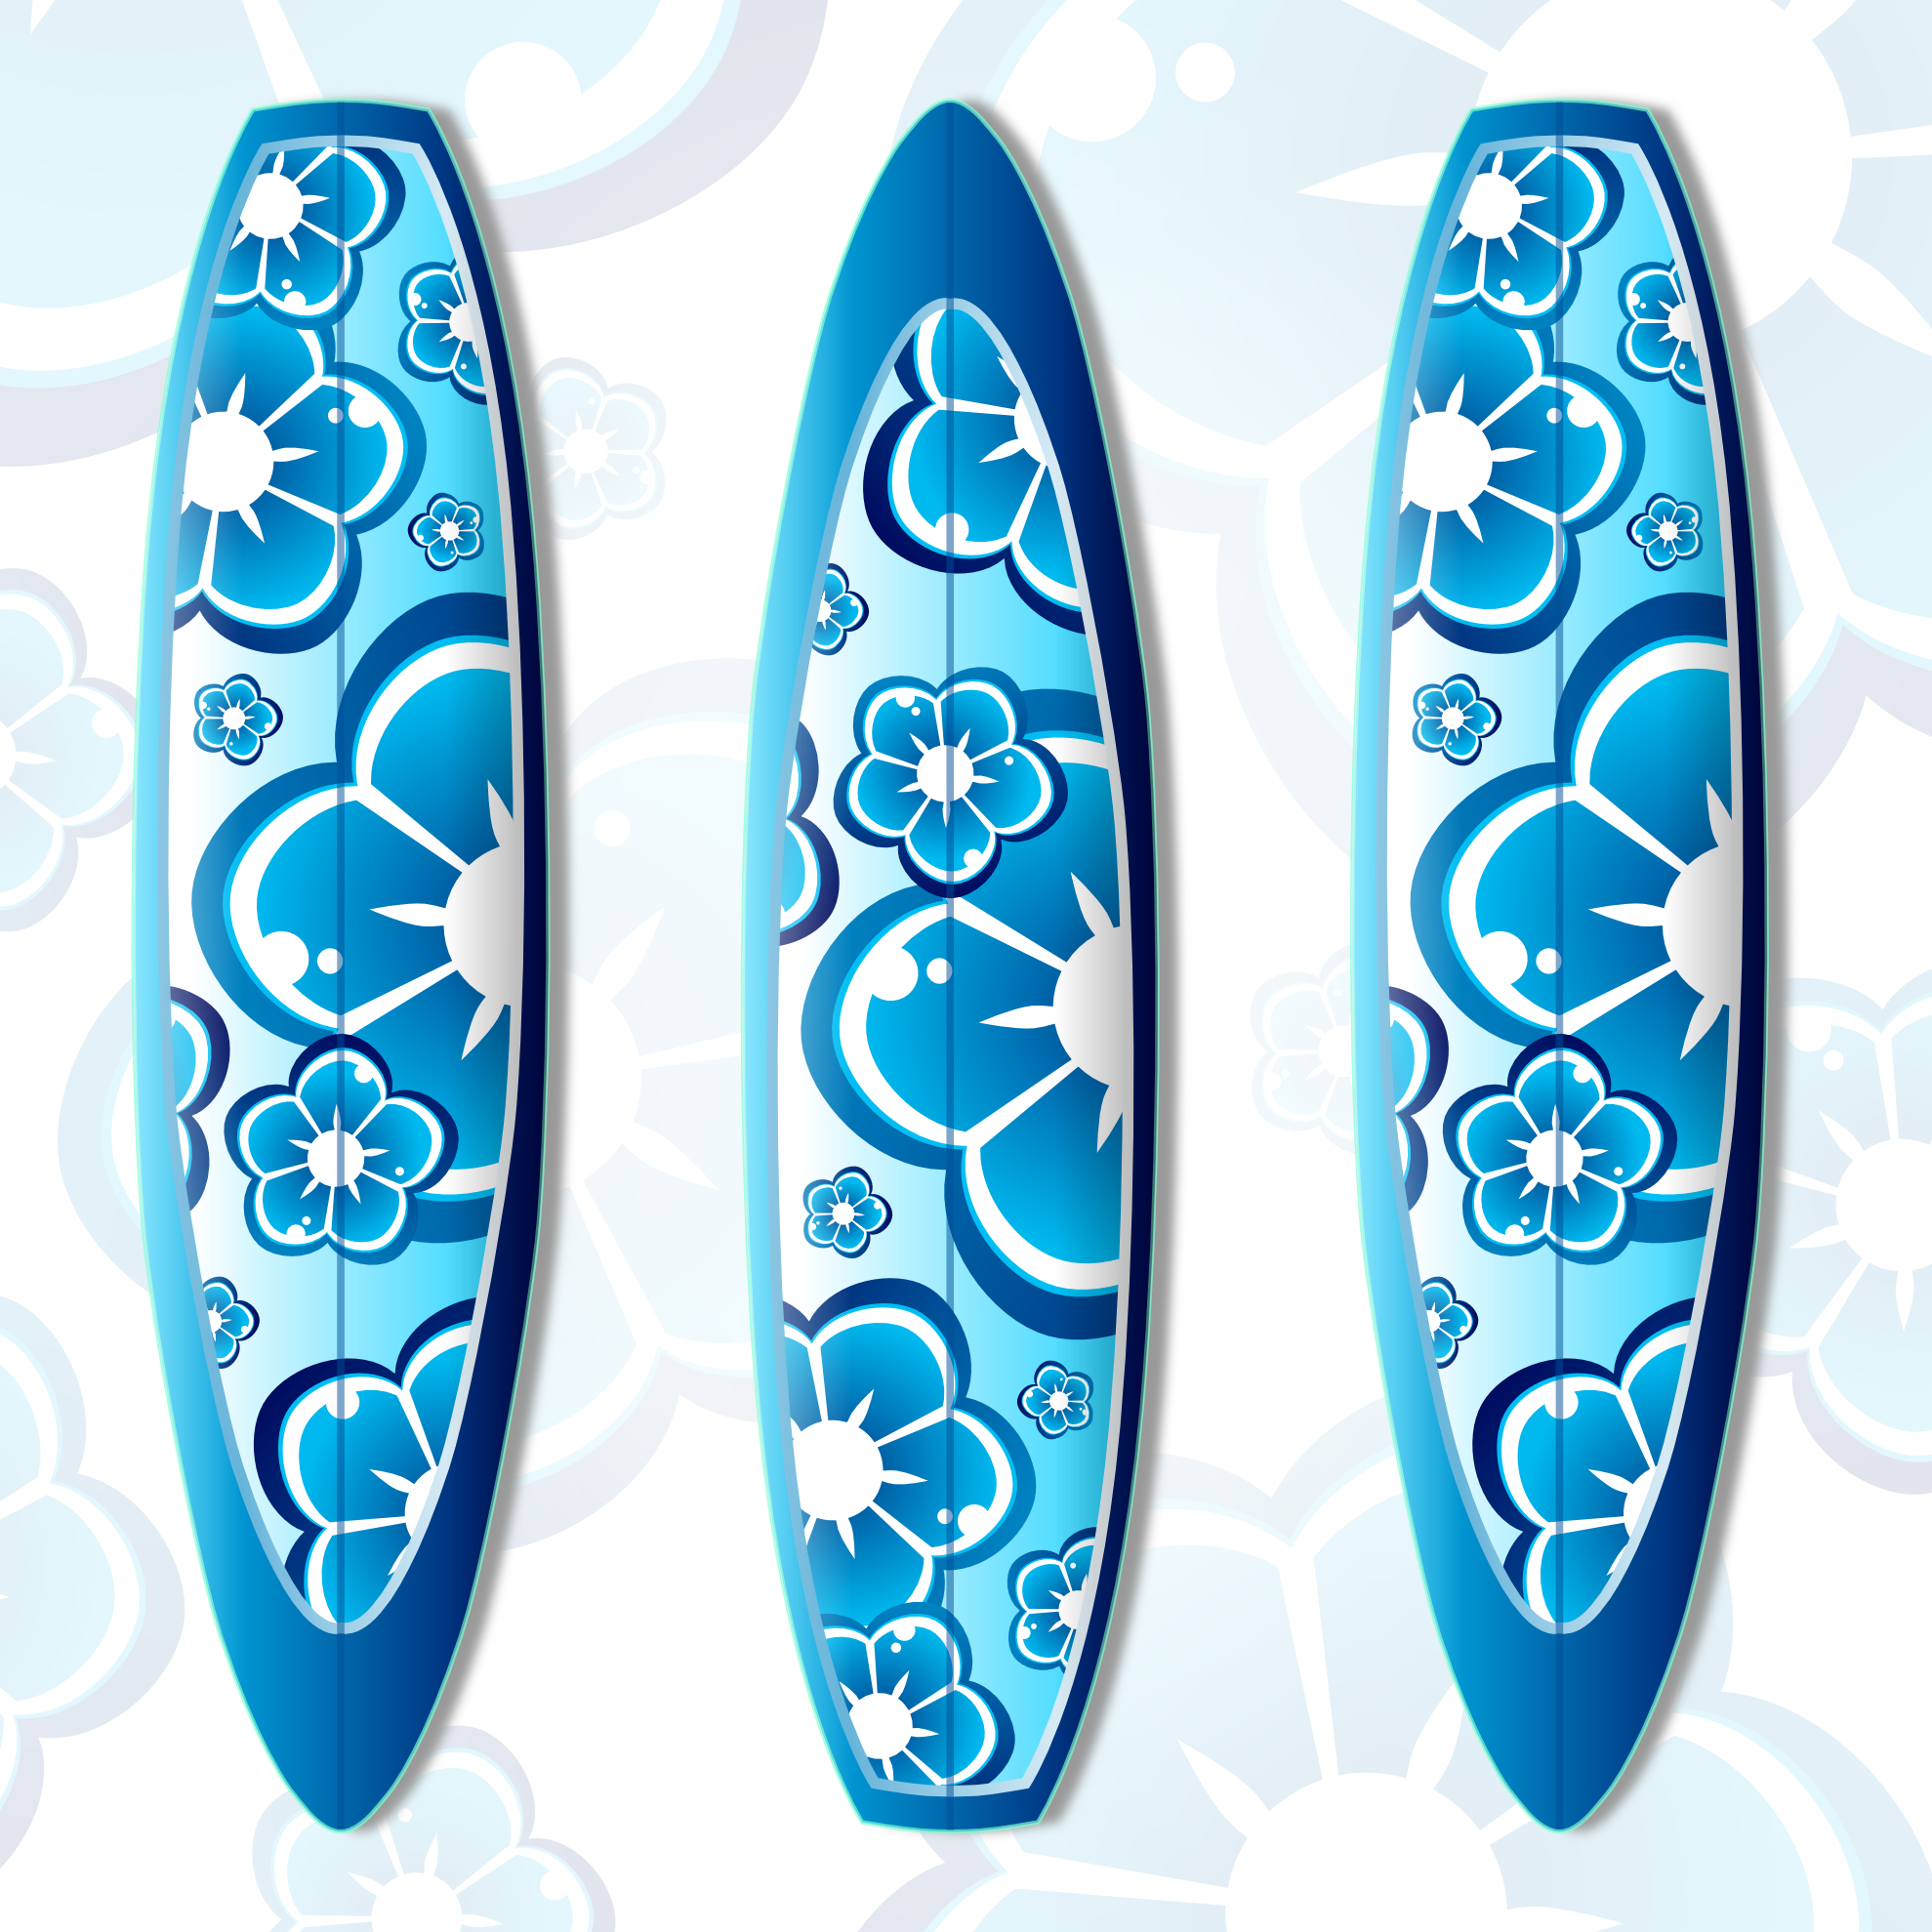 Surfboard Clipart - Cliparts.co